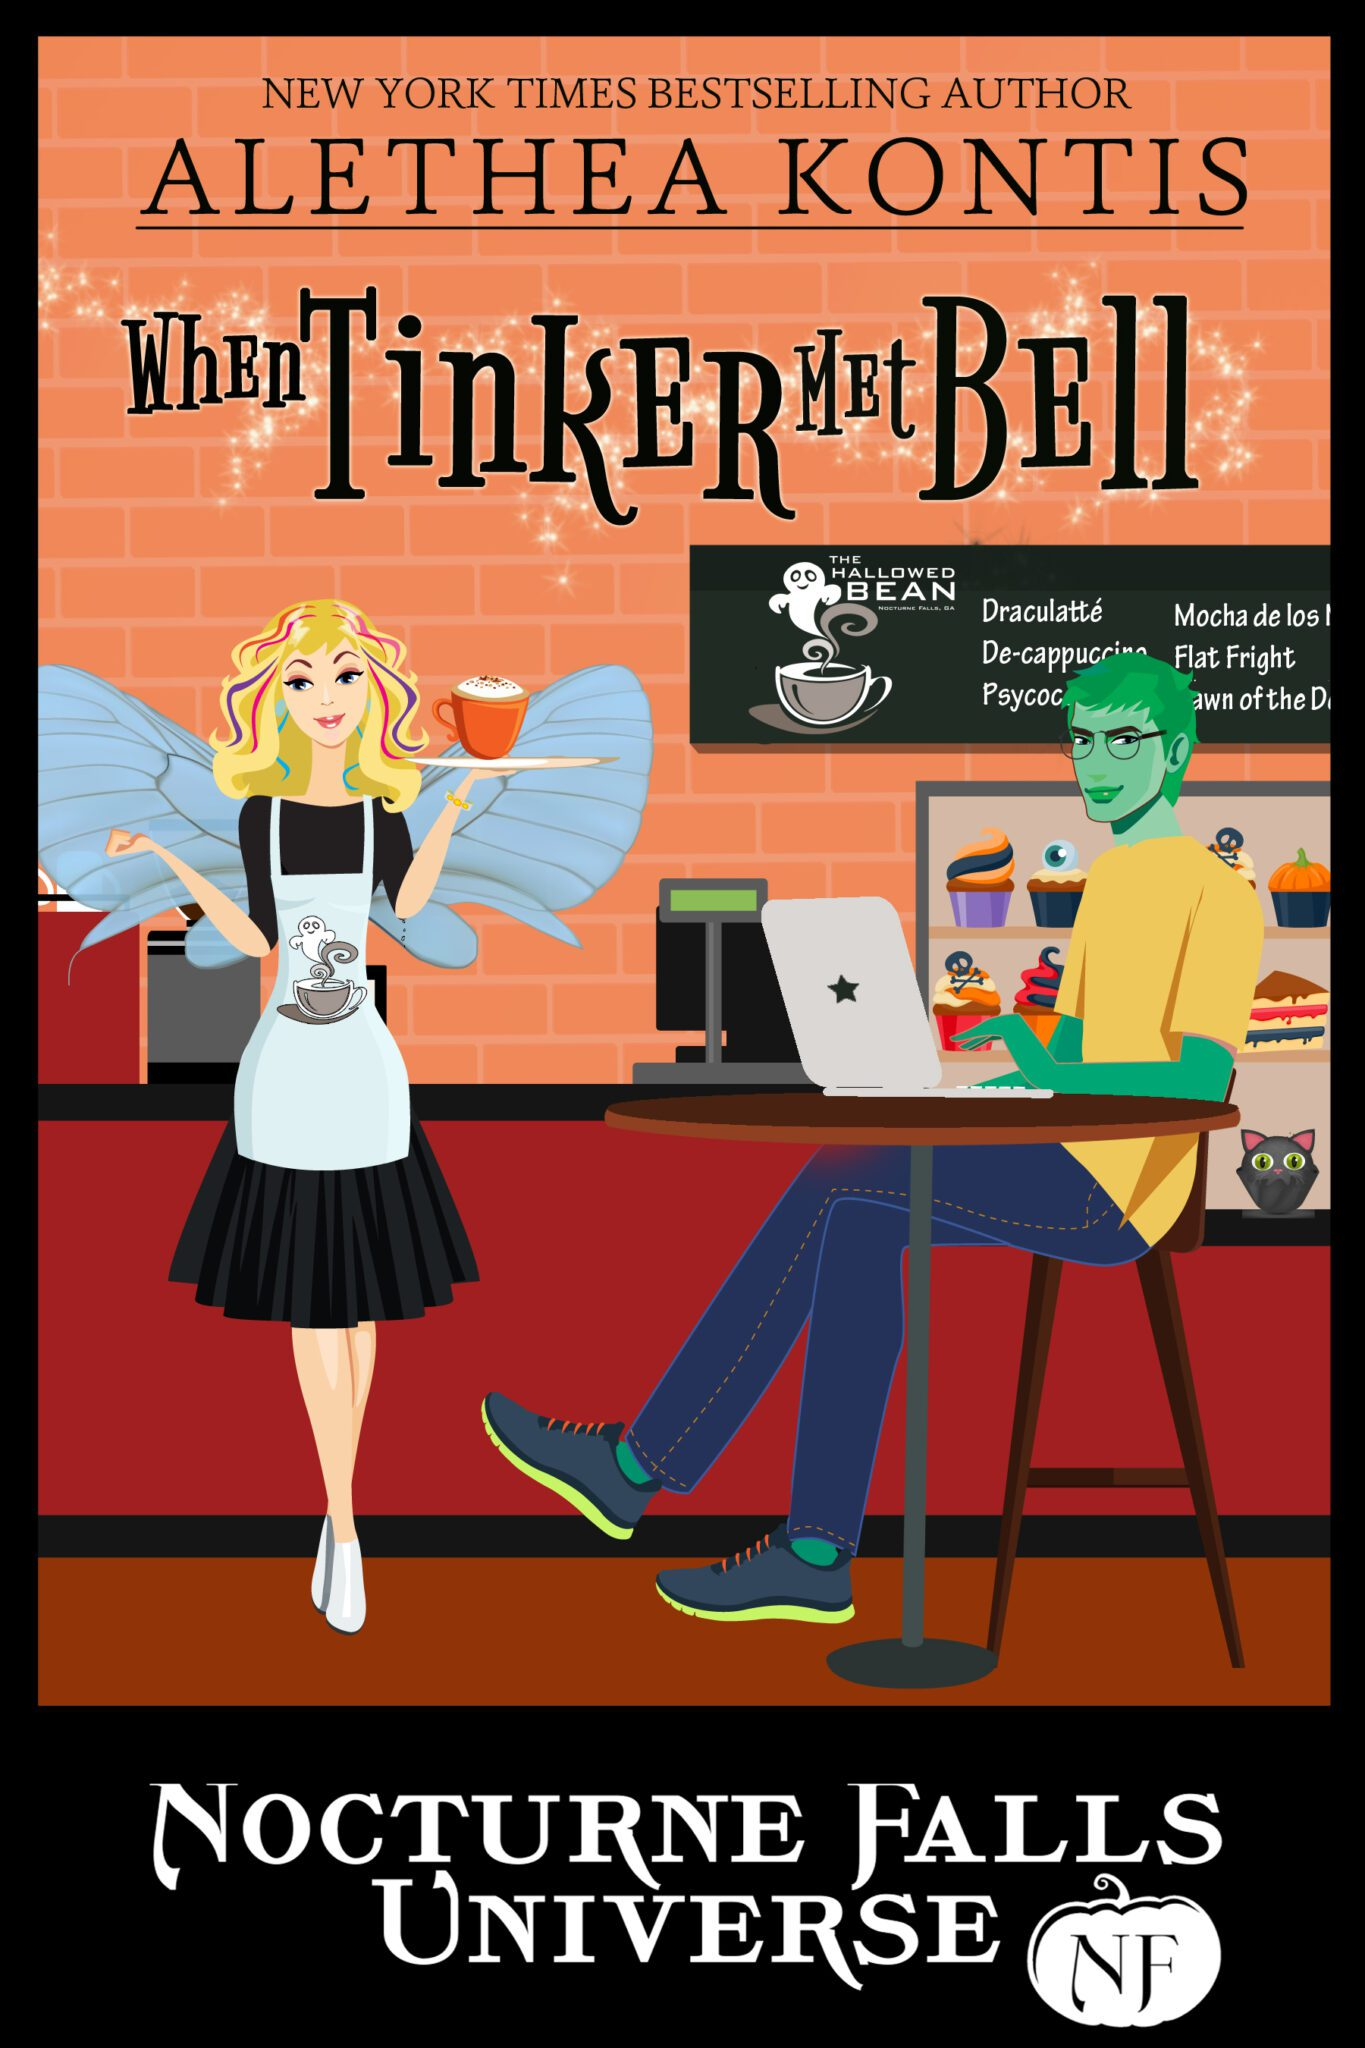 Alethea Kontis: Five Things I Learned Writing When Tinker Met Bell